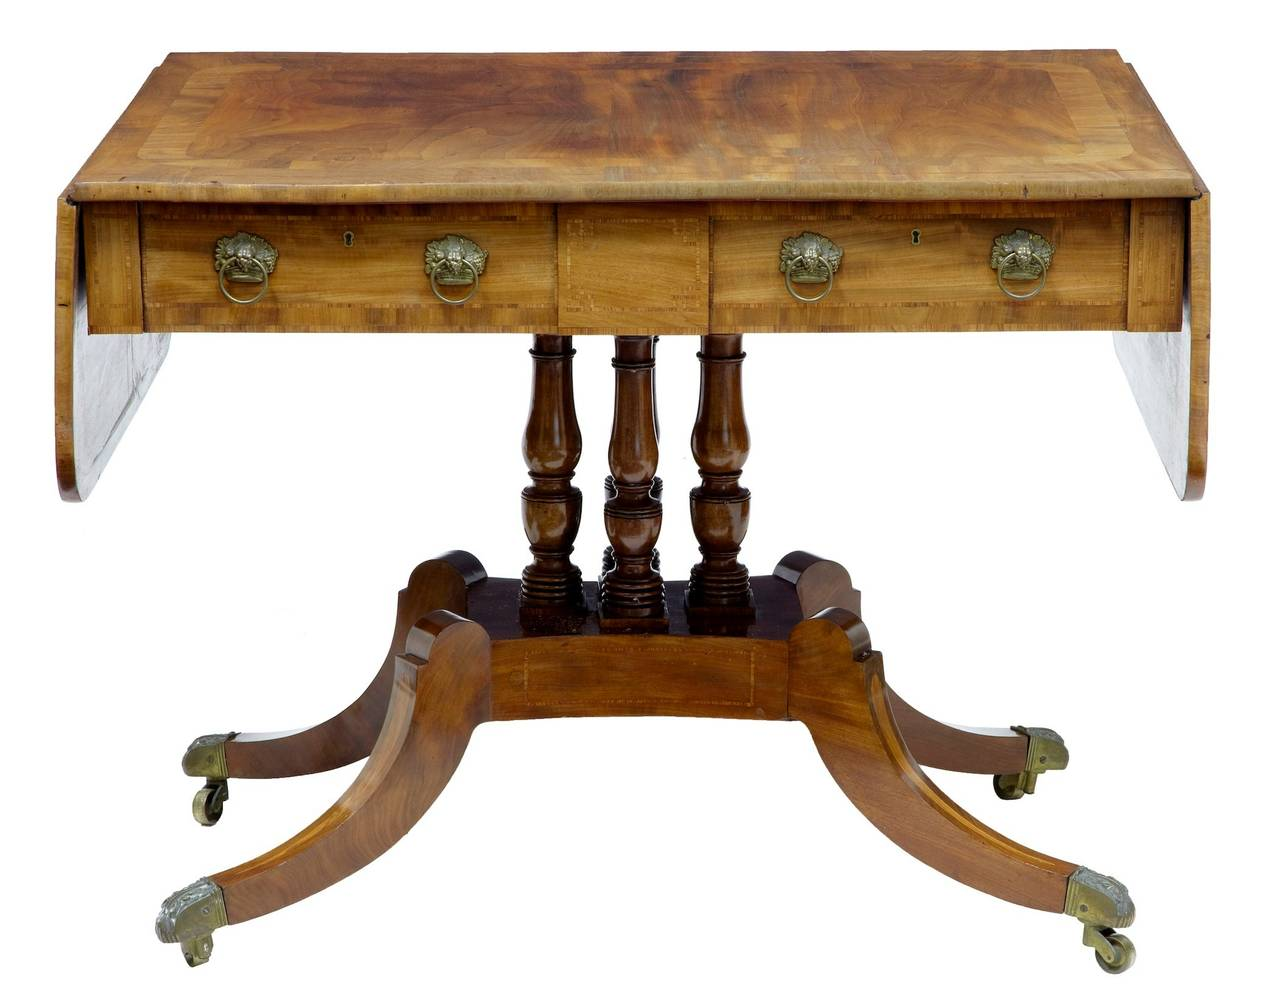 19th Century William IV Inlaid Mahogany Sofa Table In Good Condition For Sale In Debenham, Suffolk